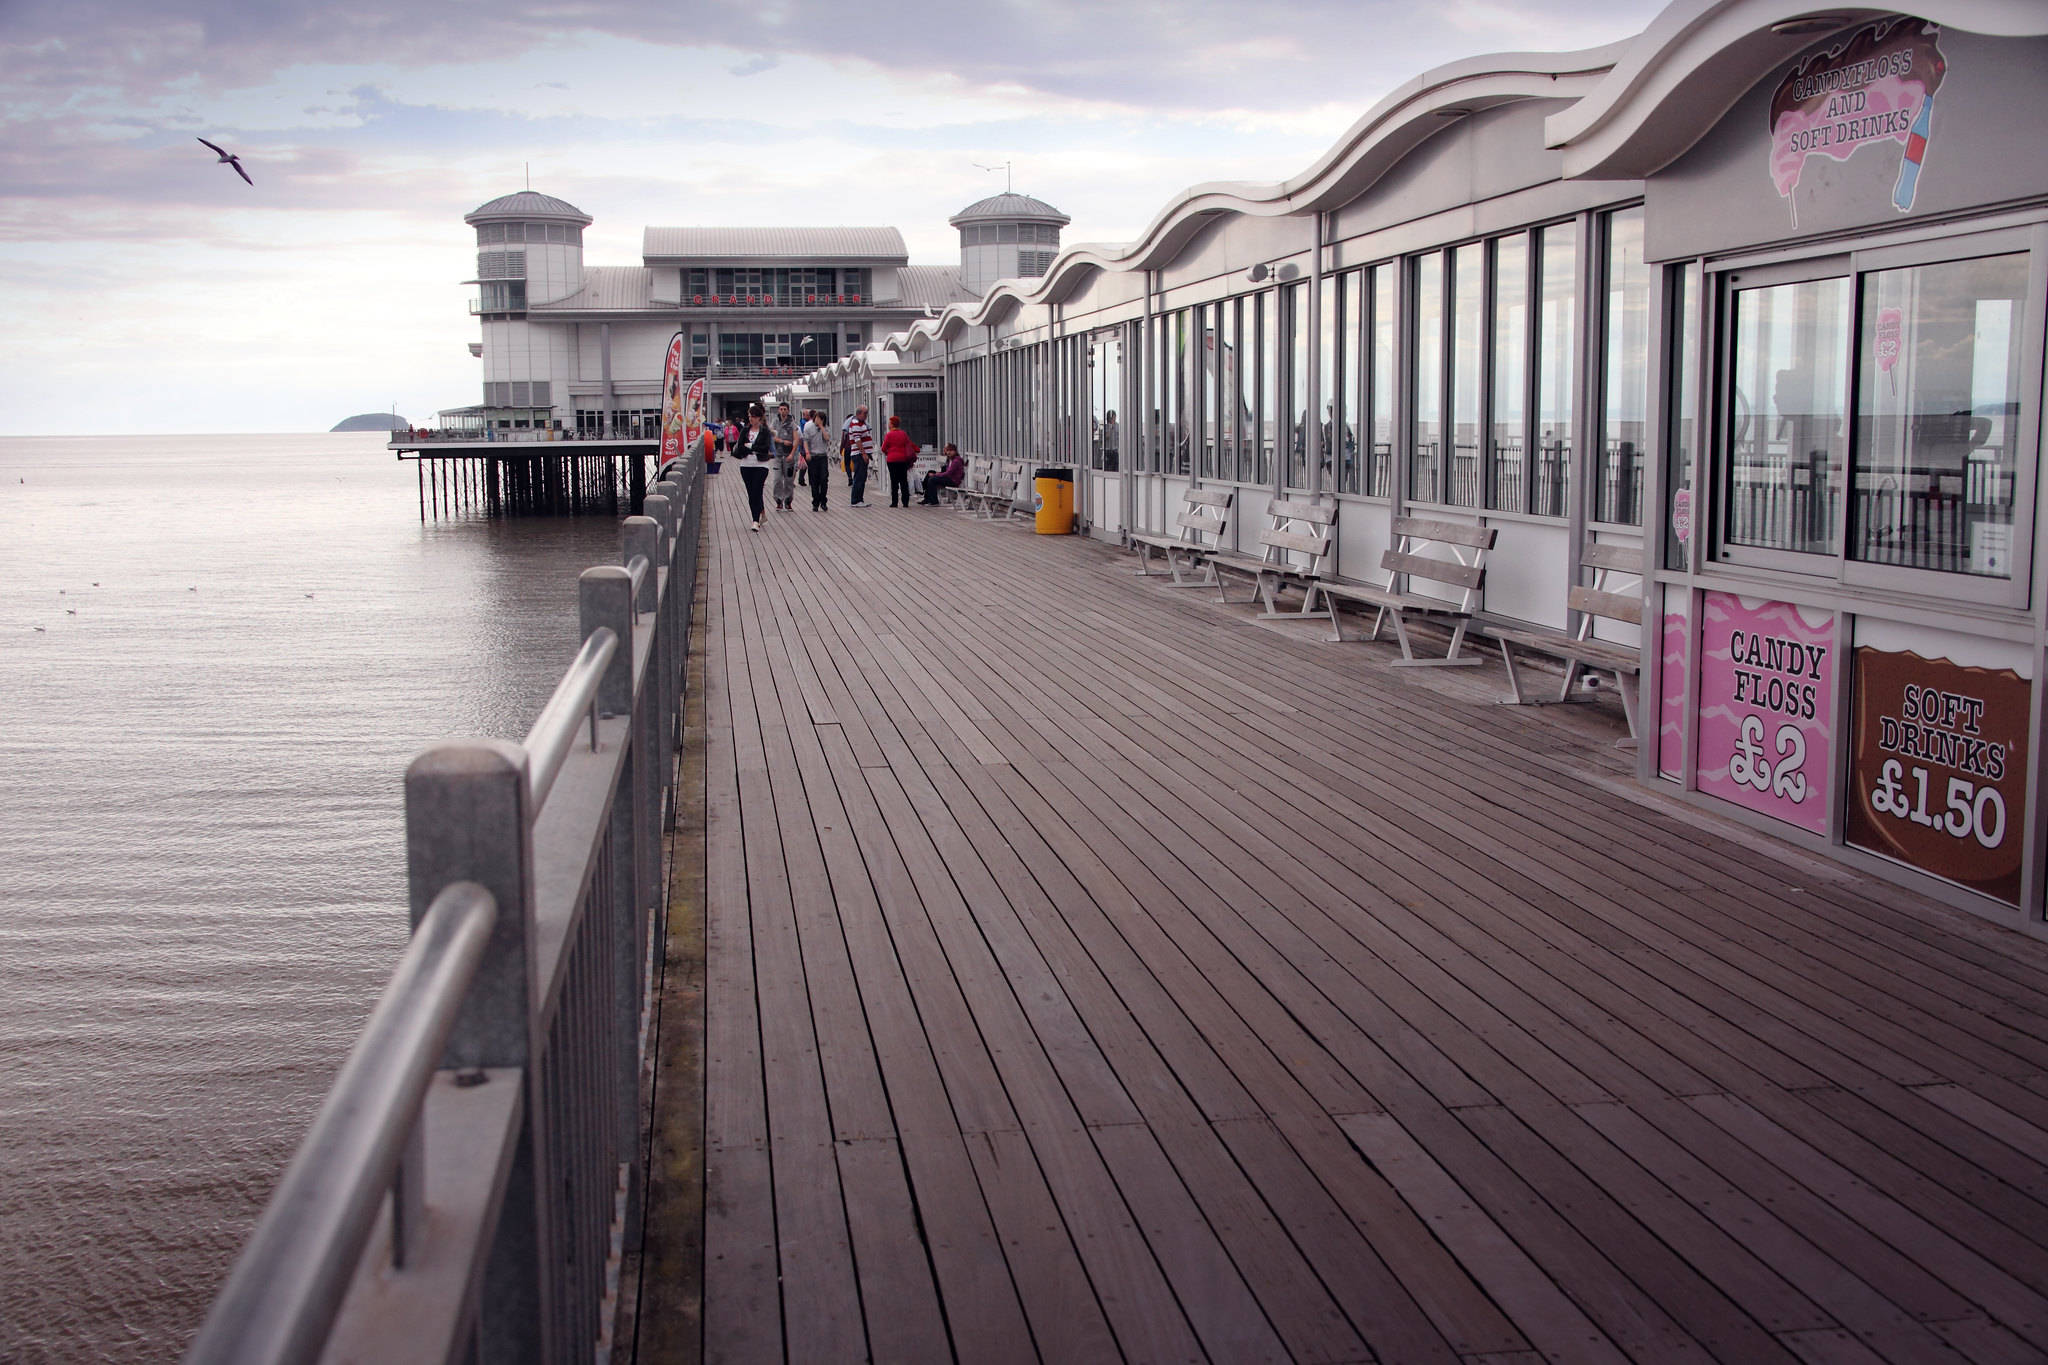 A view down the pier at Weston-super-Mare